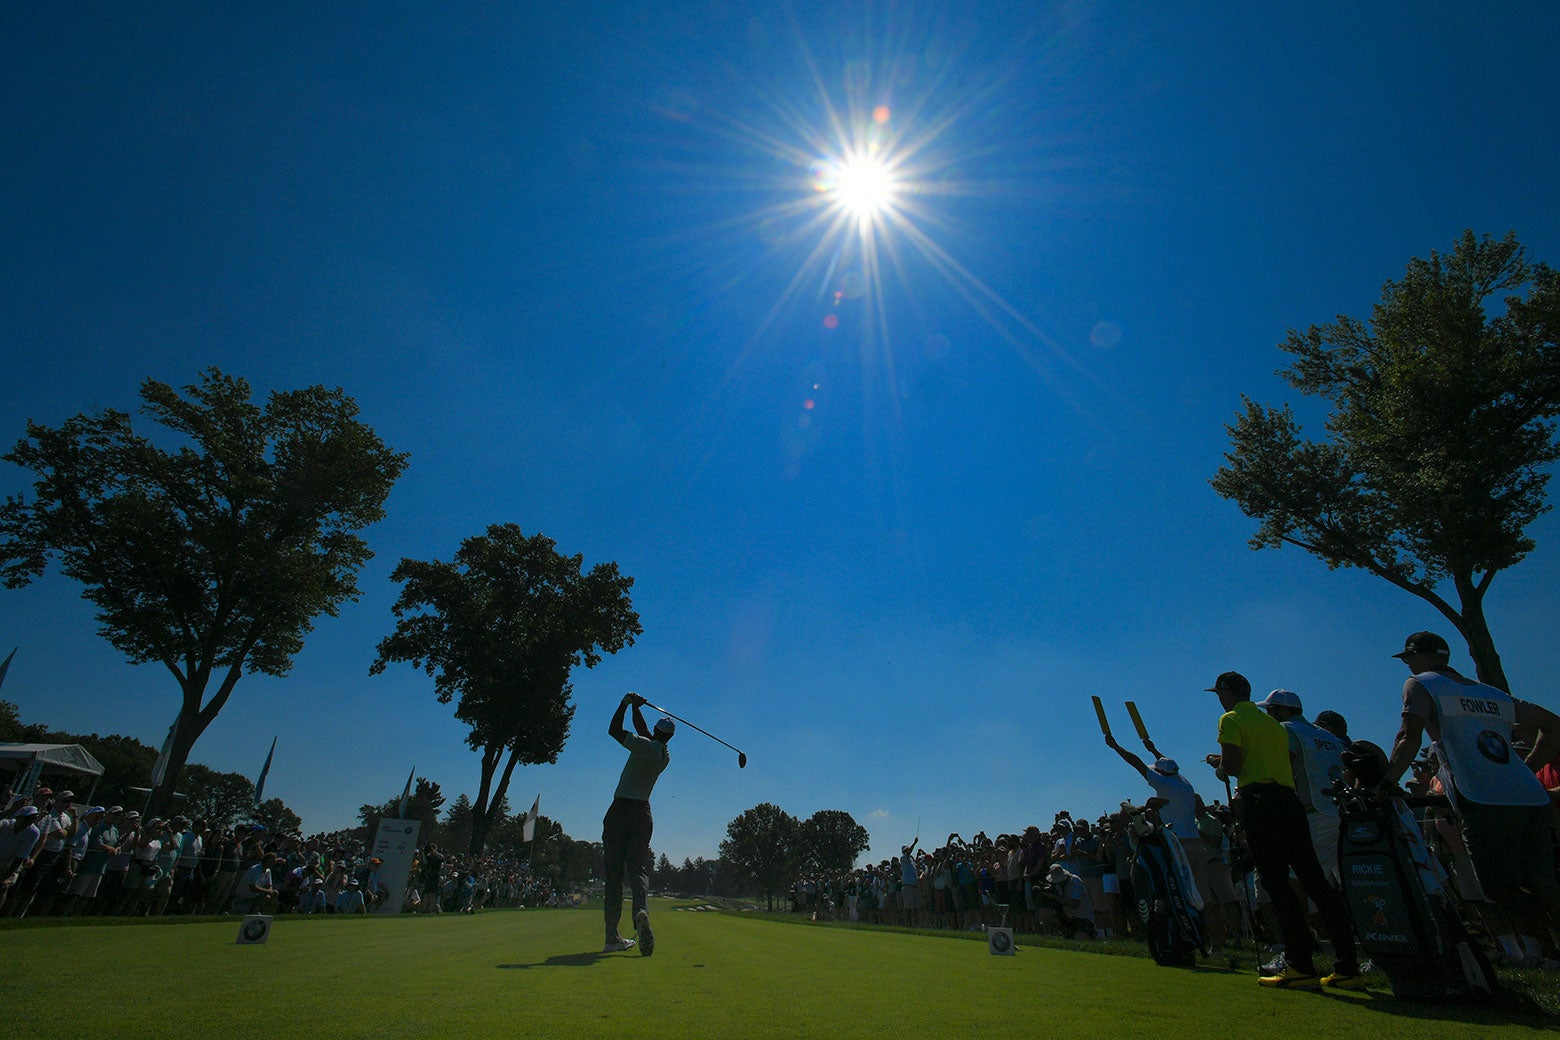 Tiger Woods plays a tee shot on the 11th hole during the first round of the BMW Championship/